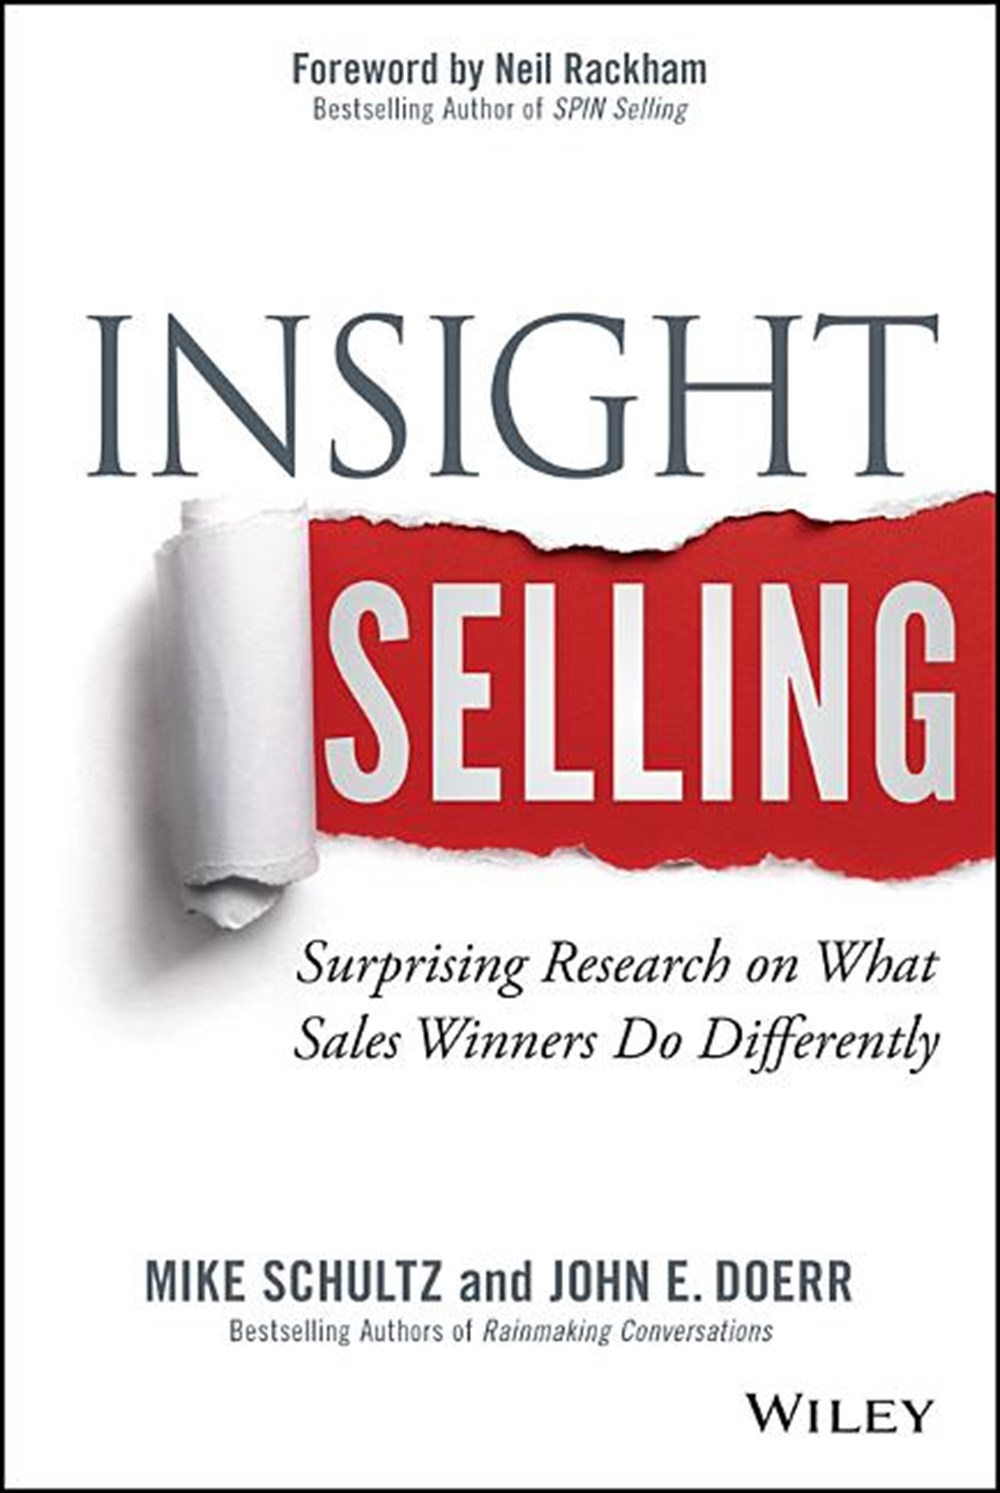 Insight Selling Surprising Research on What Sales Winners Do Differently